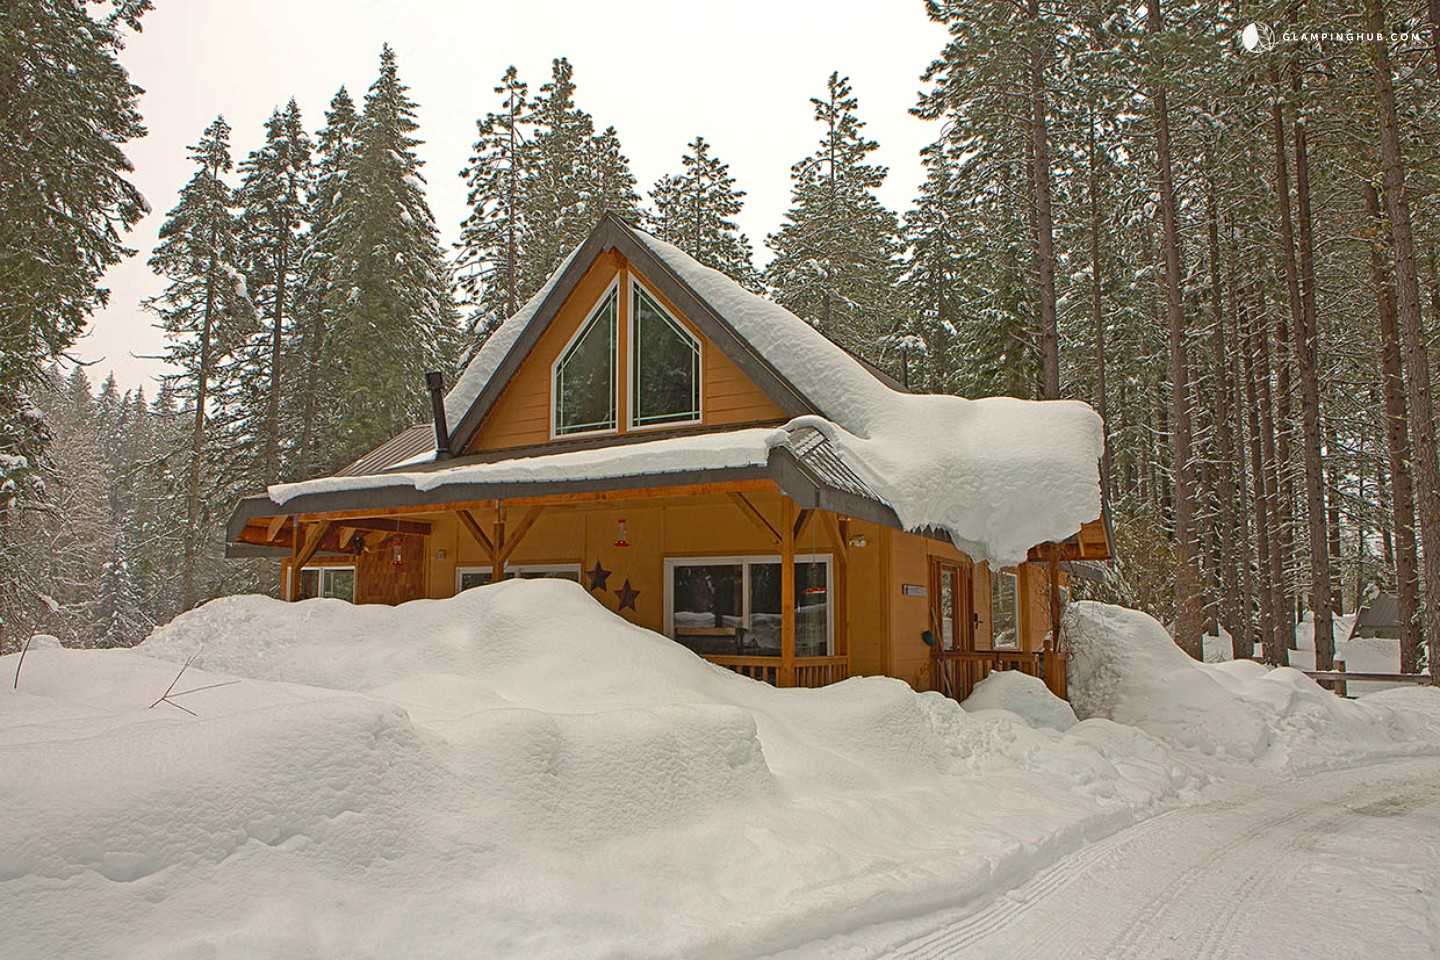 Cabin with horse boarding in washington for Leavenworth cabin rentals